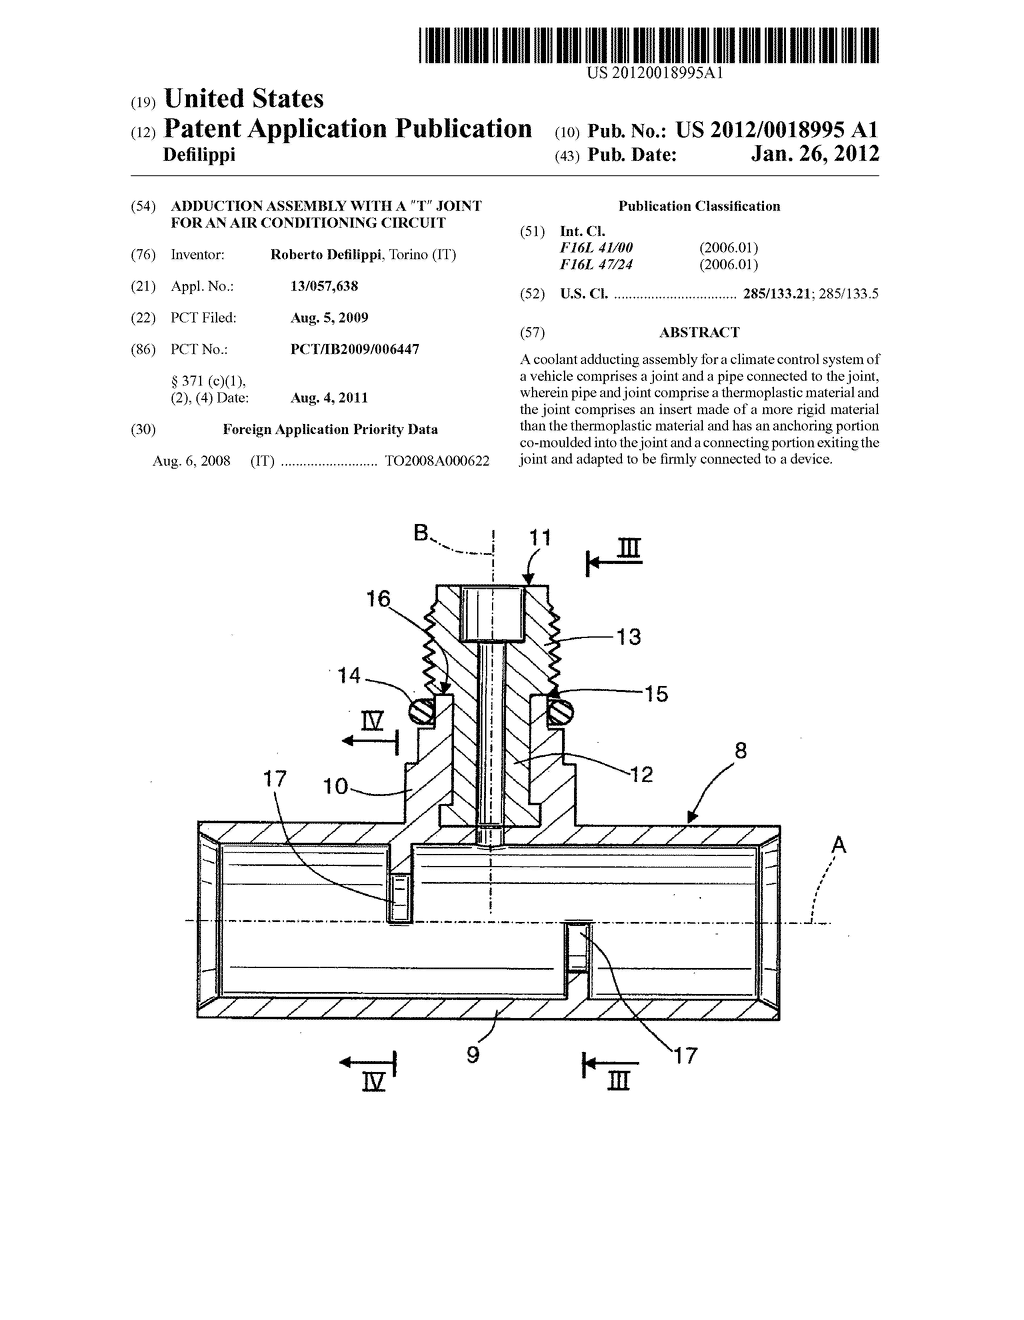 Adduction Assembly With A T Joint For An Air Conditioning Circuit Conditioner Diagram Schematic And Image 01